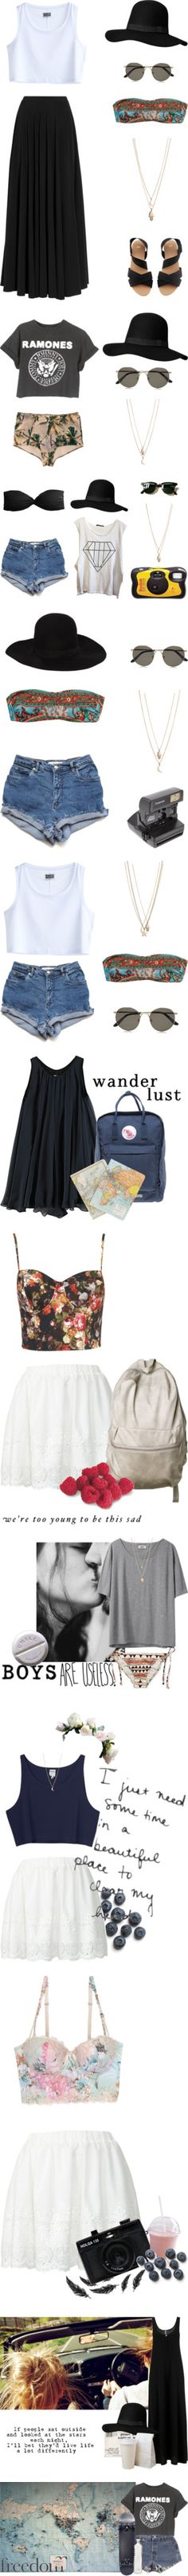 There is something so appealing about these outfits. Some girly and sweet, innocent. And some rebellious and unapologetically 90's grunge wonderfulness. I'd rock them all.